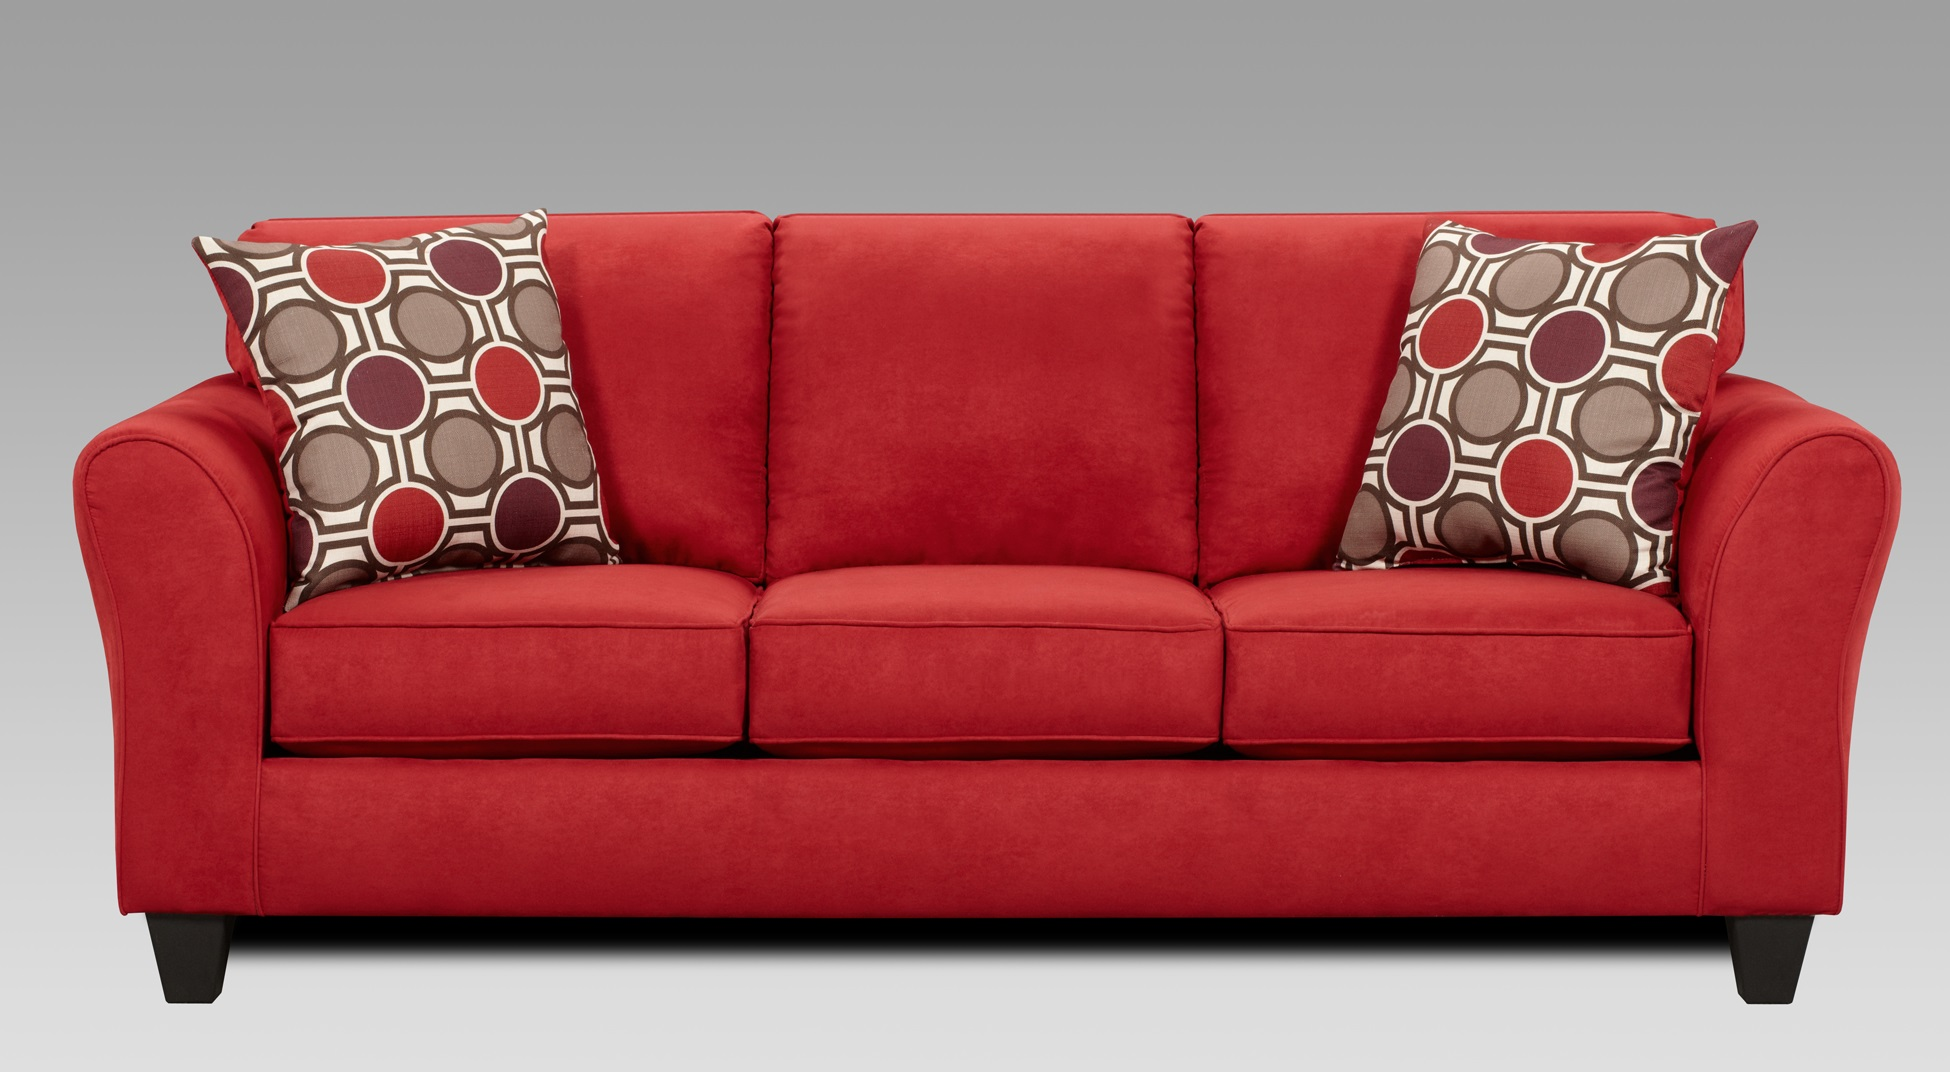 Red Reclining Sofa Microfiber Red Reclining Sofa Microfiber